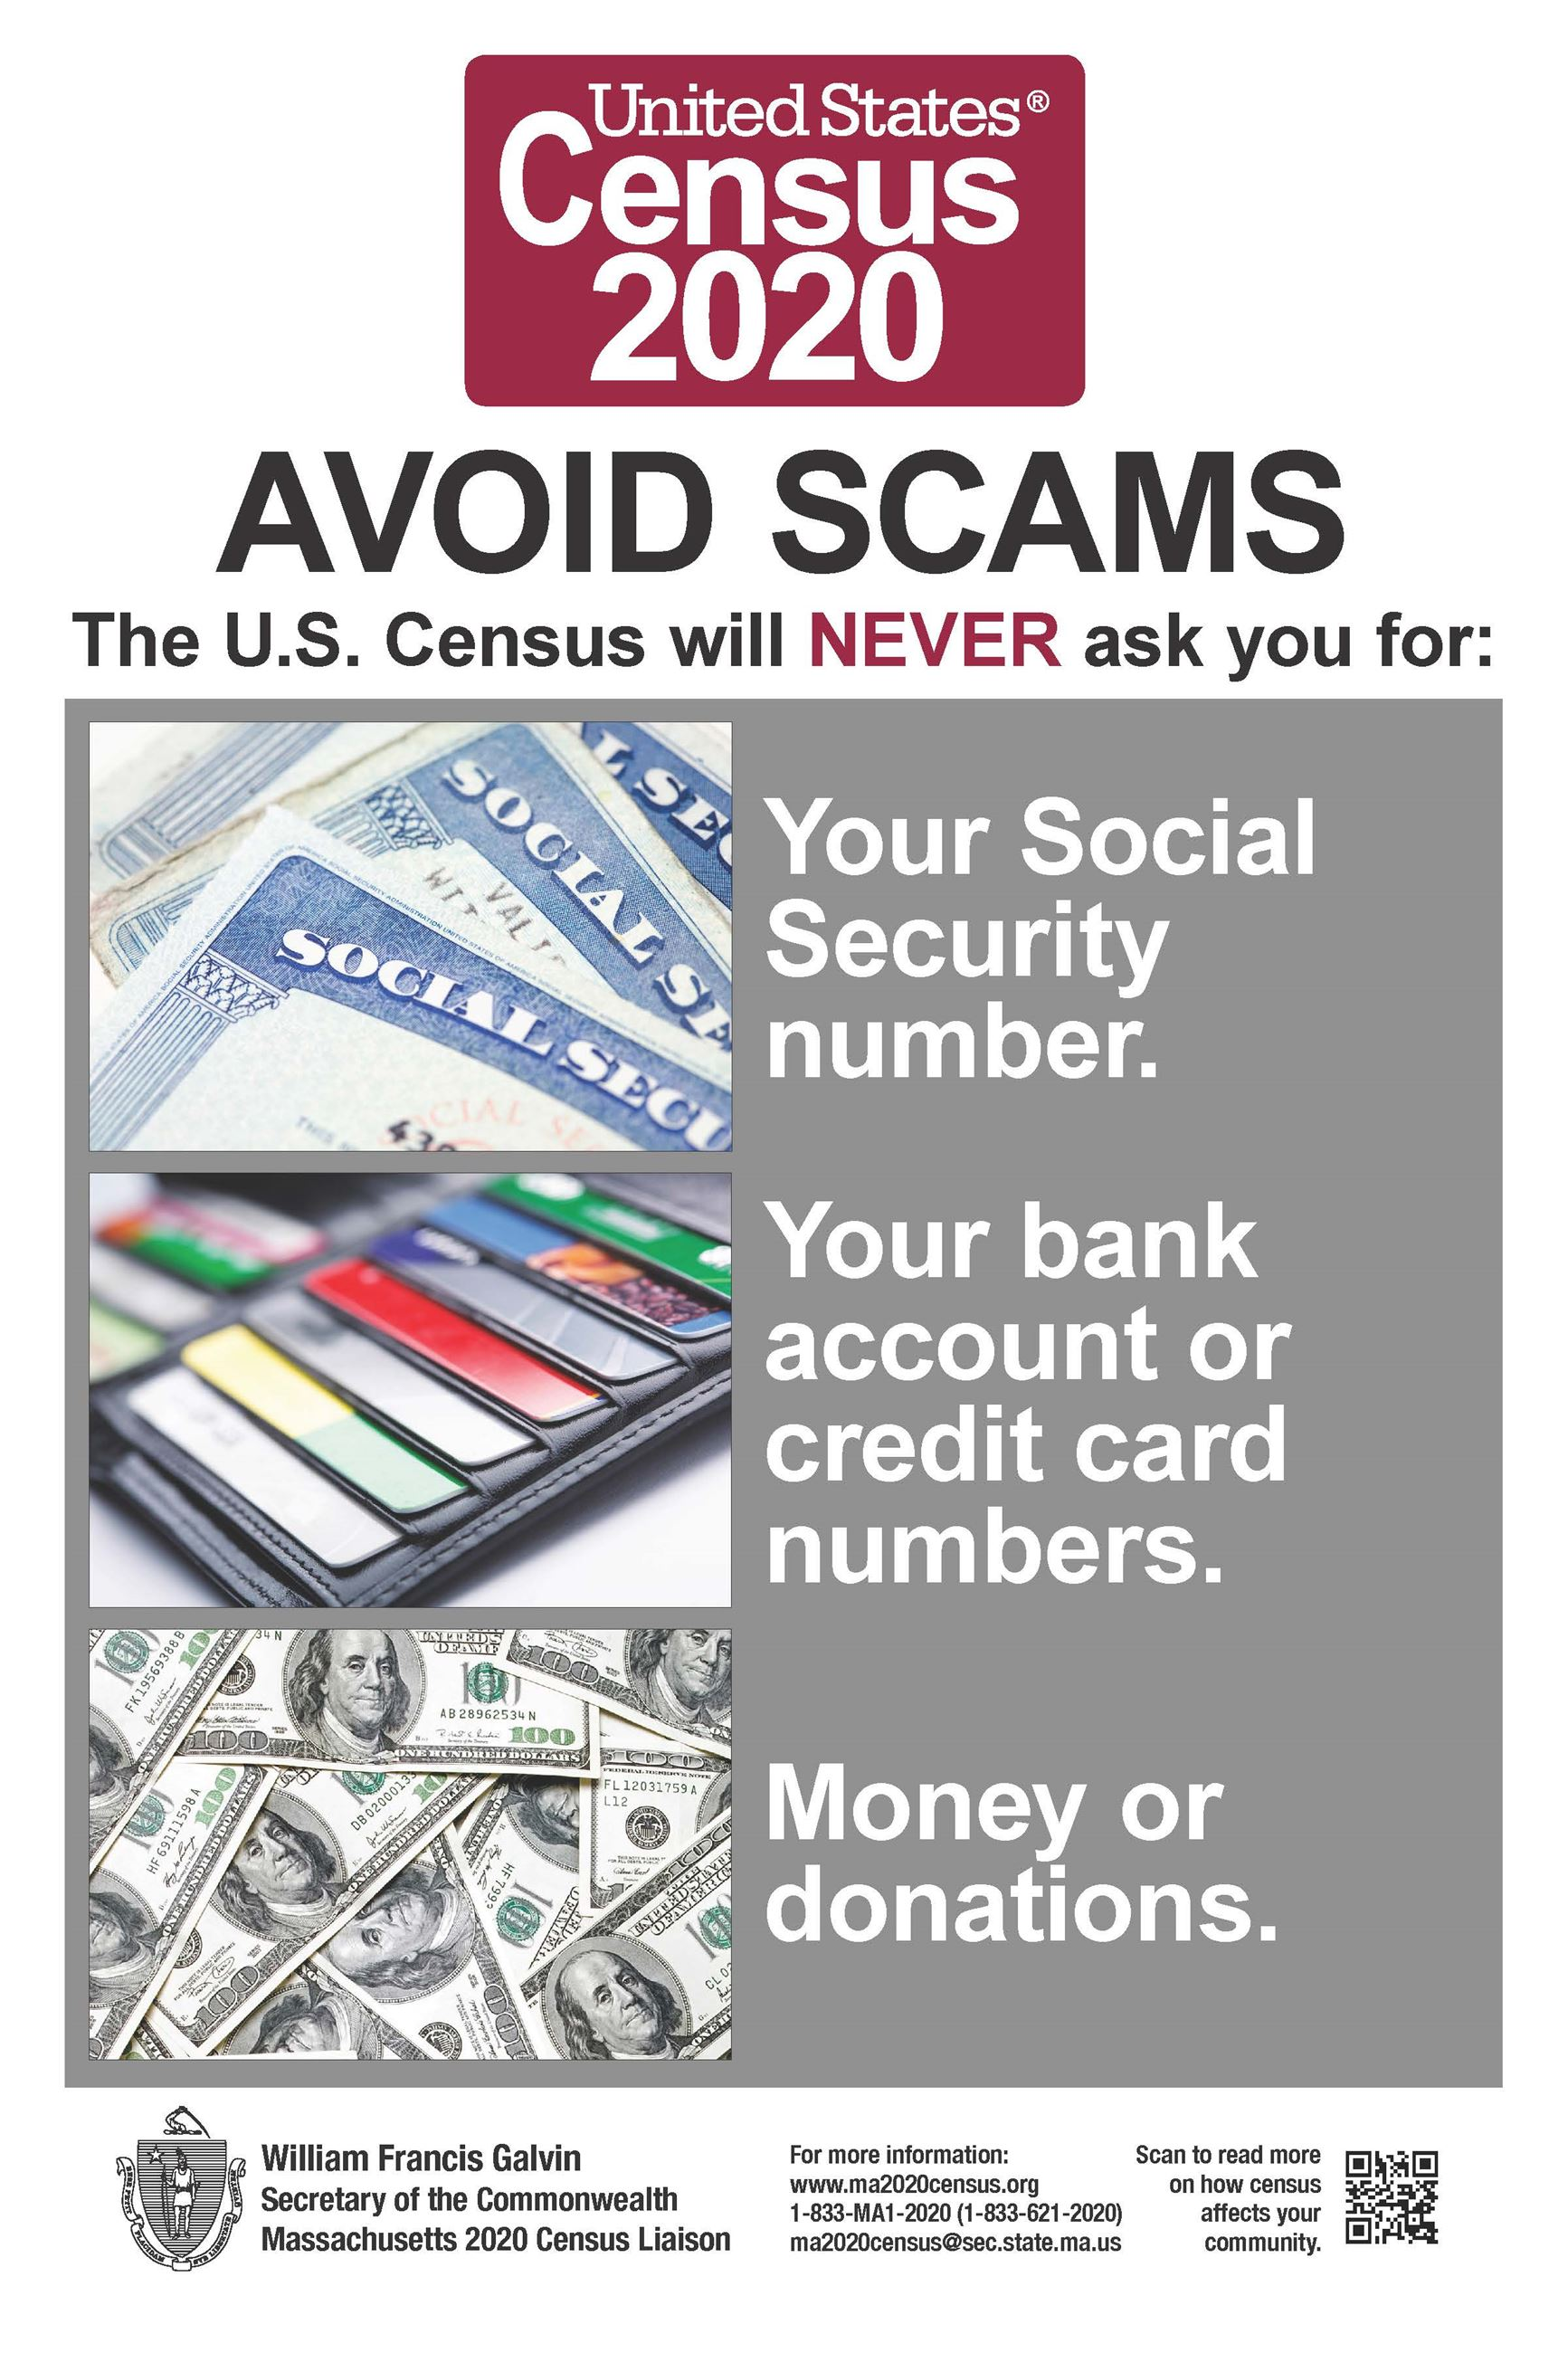 Census Avoid Scams poster (PDF)